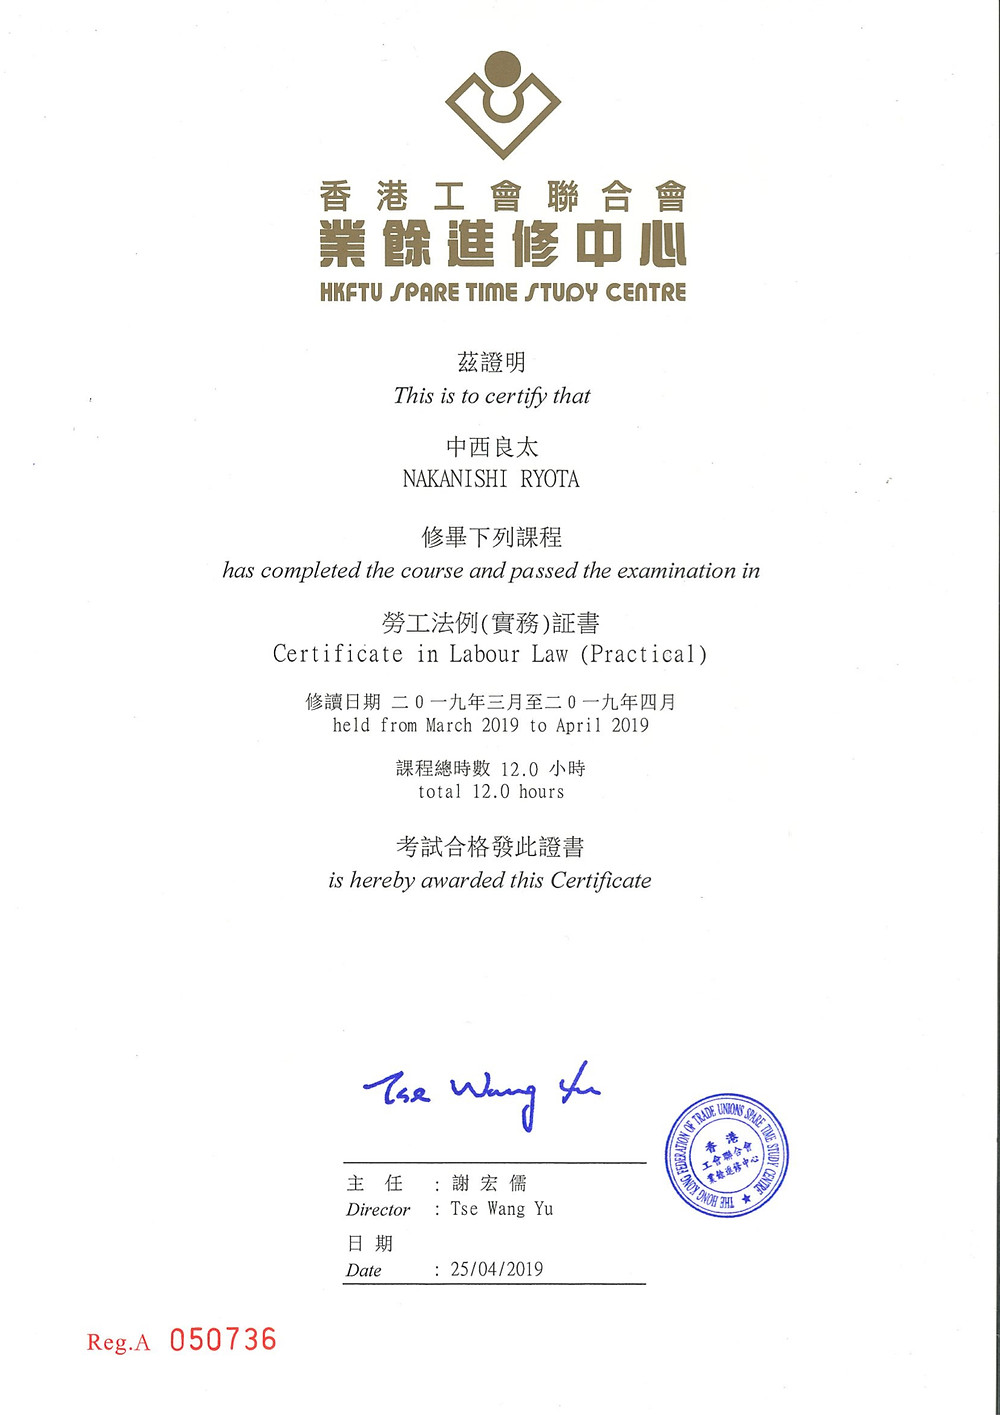 Ryota Nakanishi's Hong Kong labor law knowledge was qualified by professional examination by HKFTU in 2019.